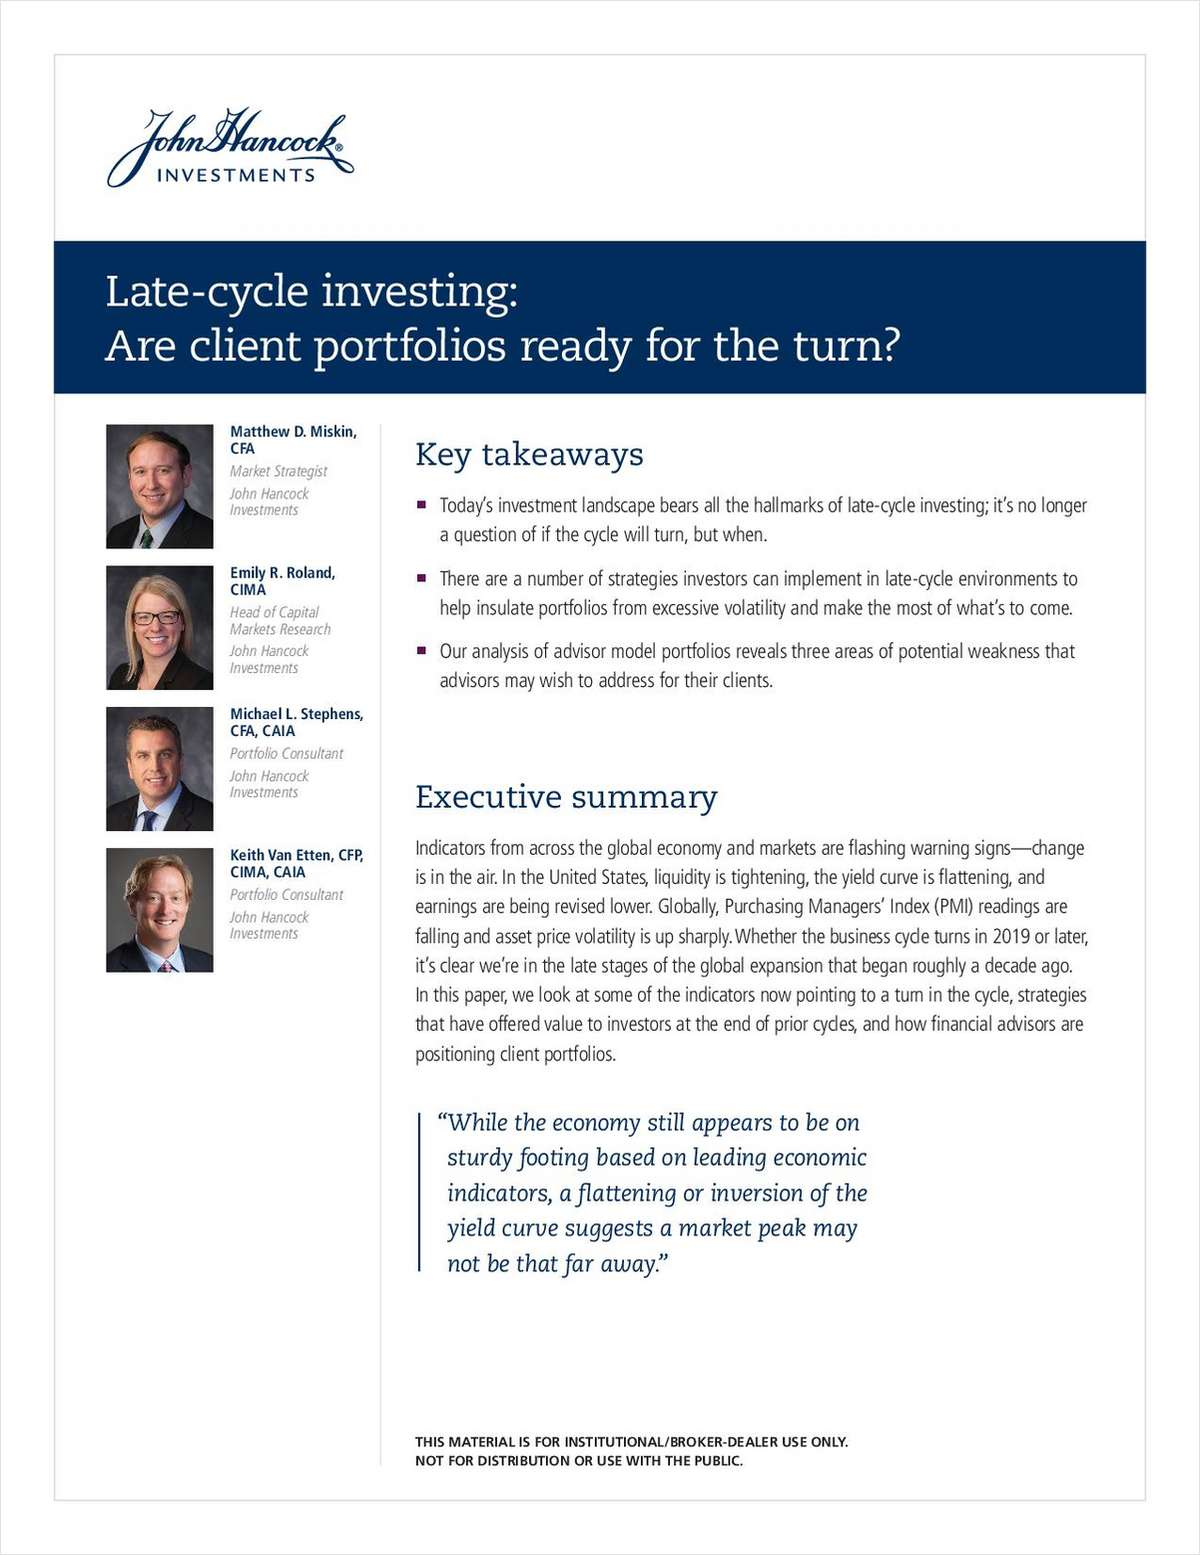 Late-Cycle Investing: Are Client Portfolios Ready For The Turn?